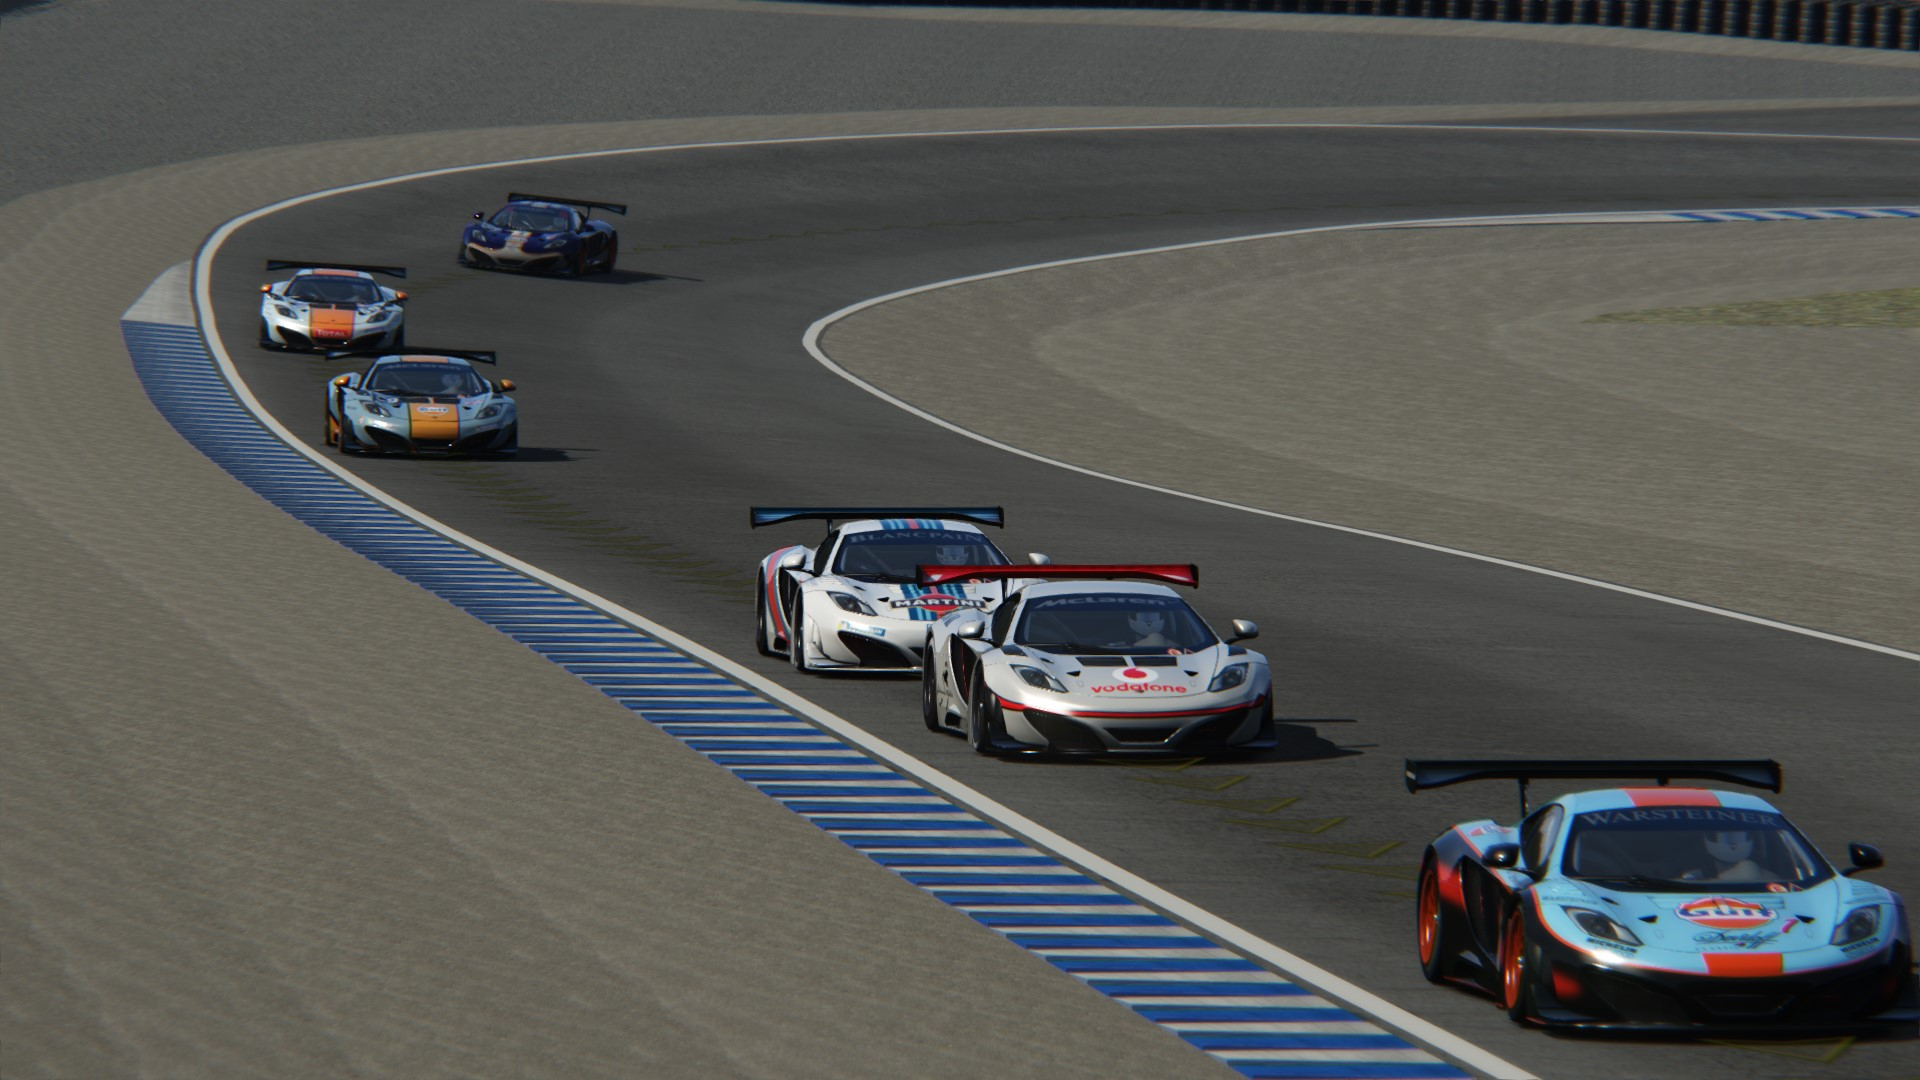 Screenshot_mclaren_mp412c_gt3_bs_lagunaseca_29-5-116-16-47-27.jpg